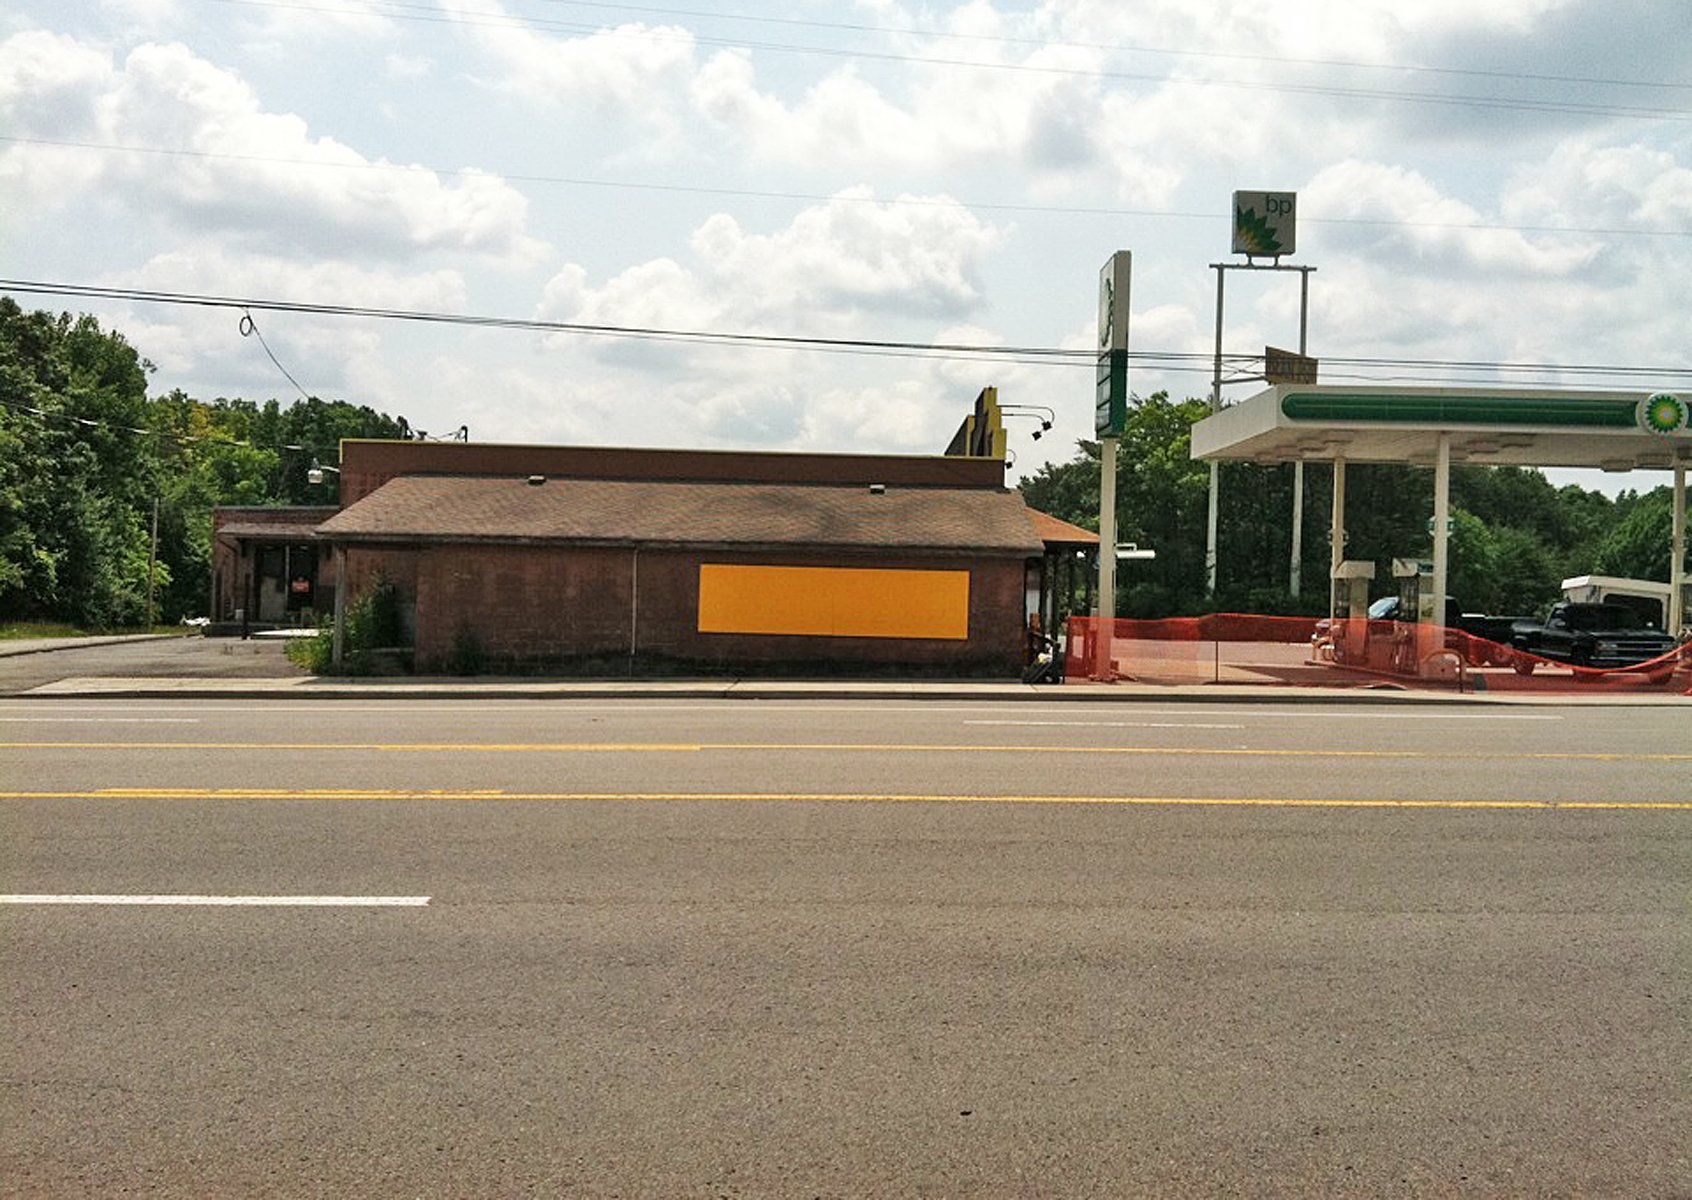 A minimalist yellow rectangle on a low brick building next to a BP gas station.